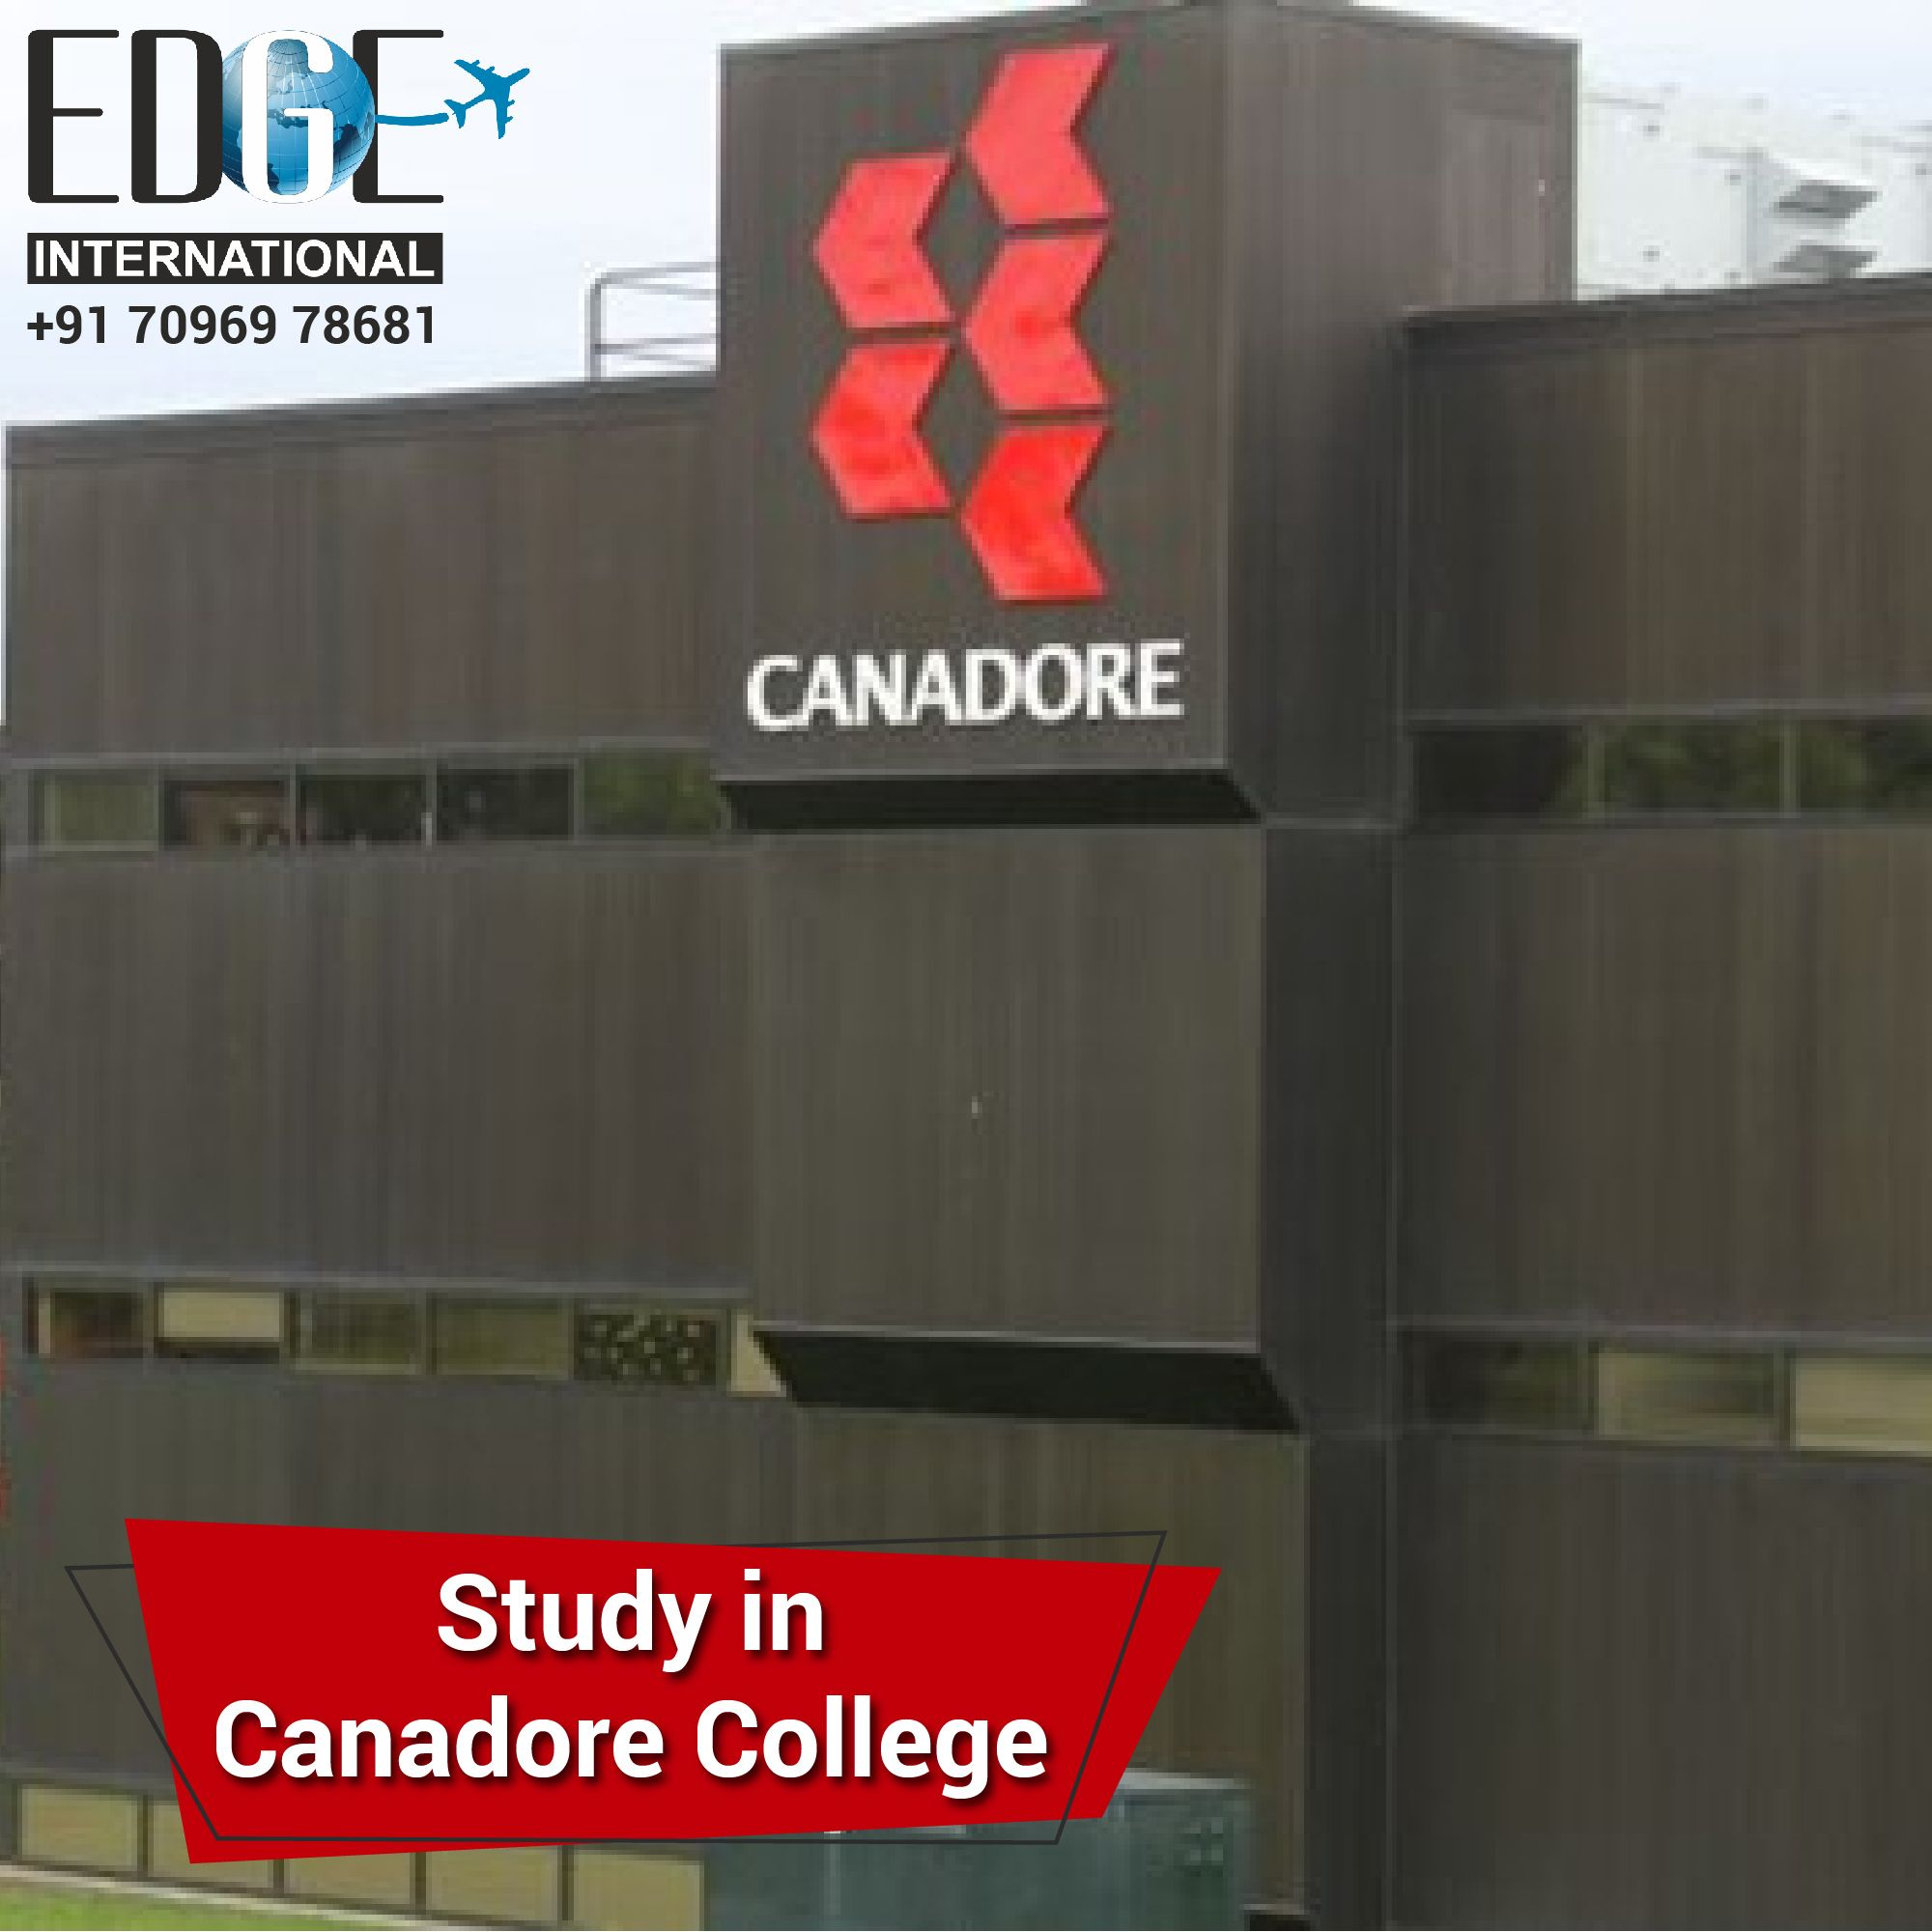 Application For September 2019 Intake Is Started Now For Canadore College Requirements For Diploma Or Pg Programs Overseas Education Vadodara Study Abroad